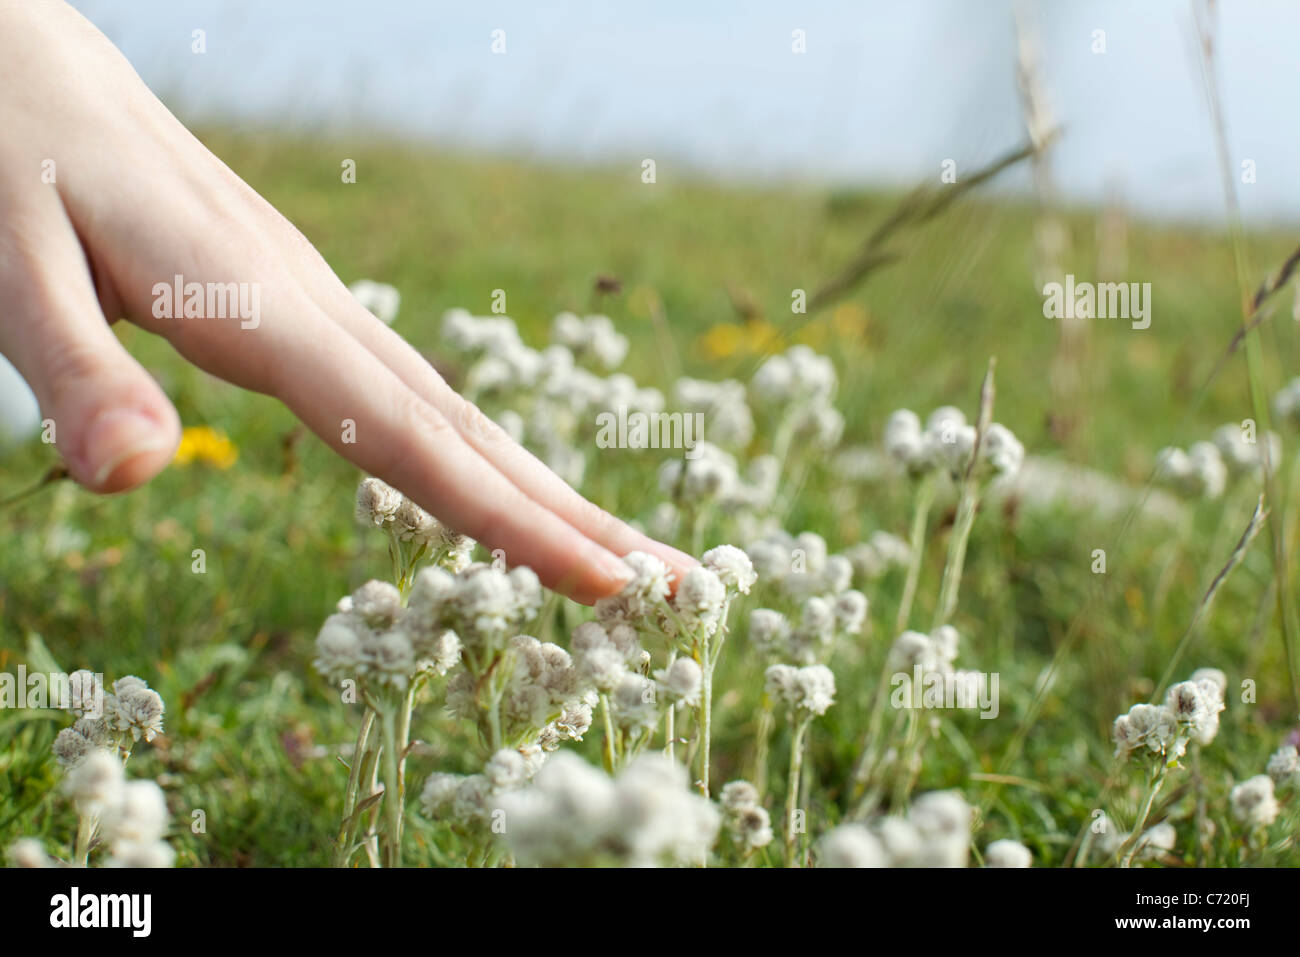 Hand touching white flowers in meadow, cropped - Stock Image